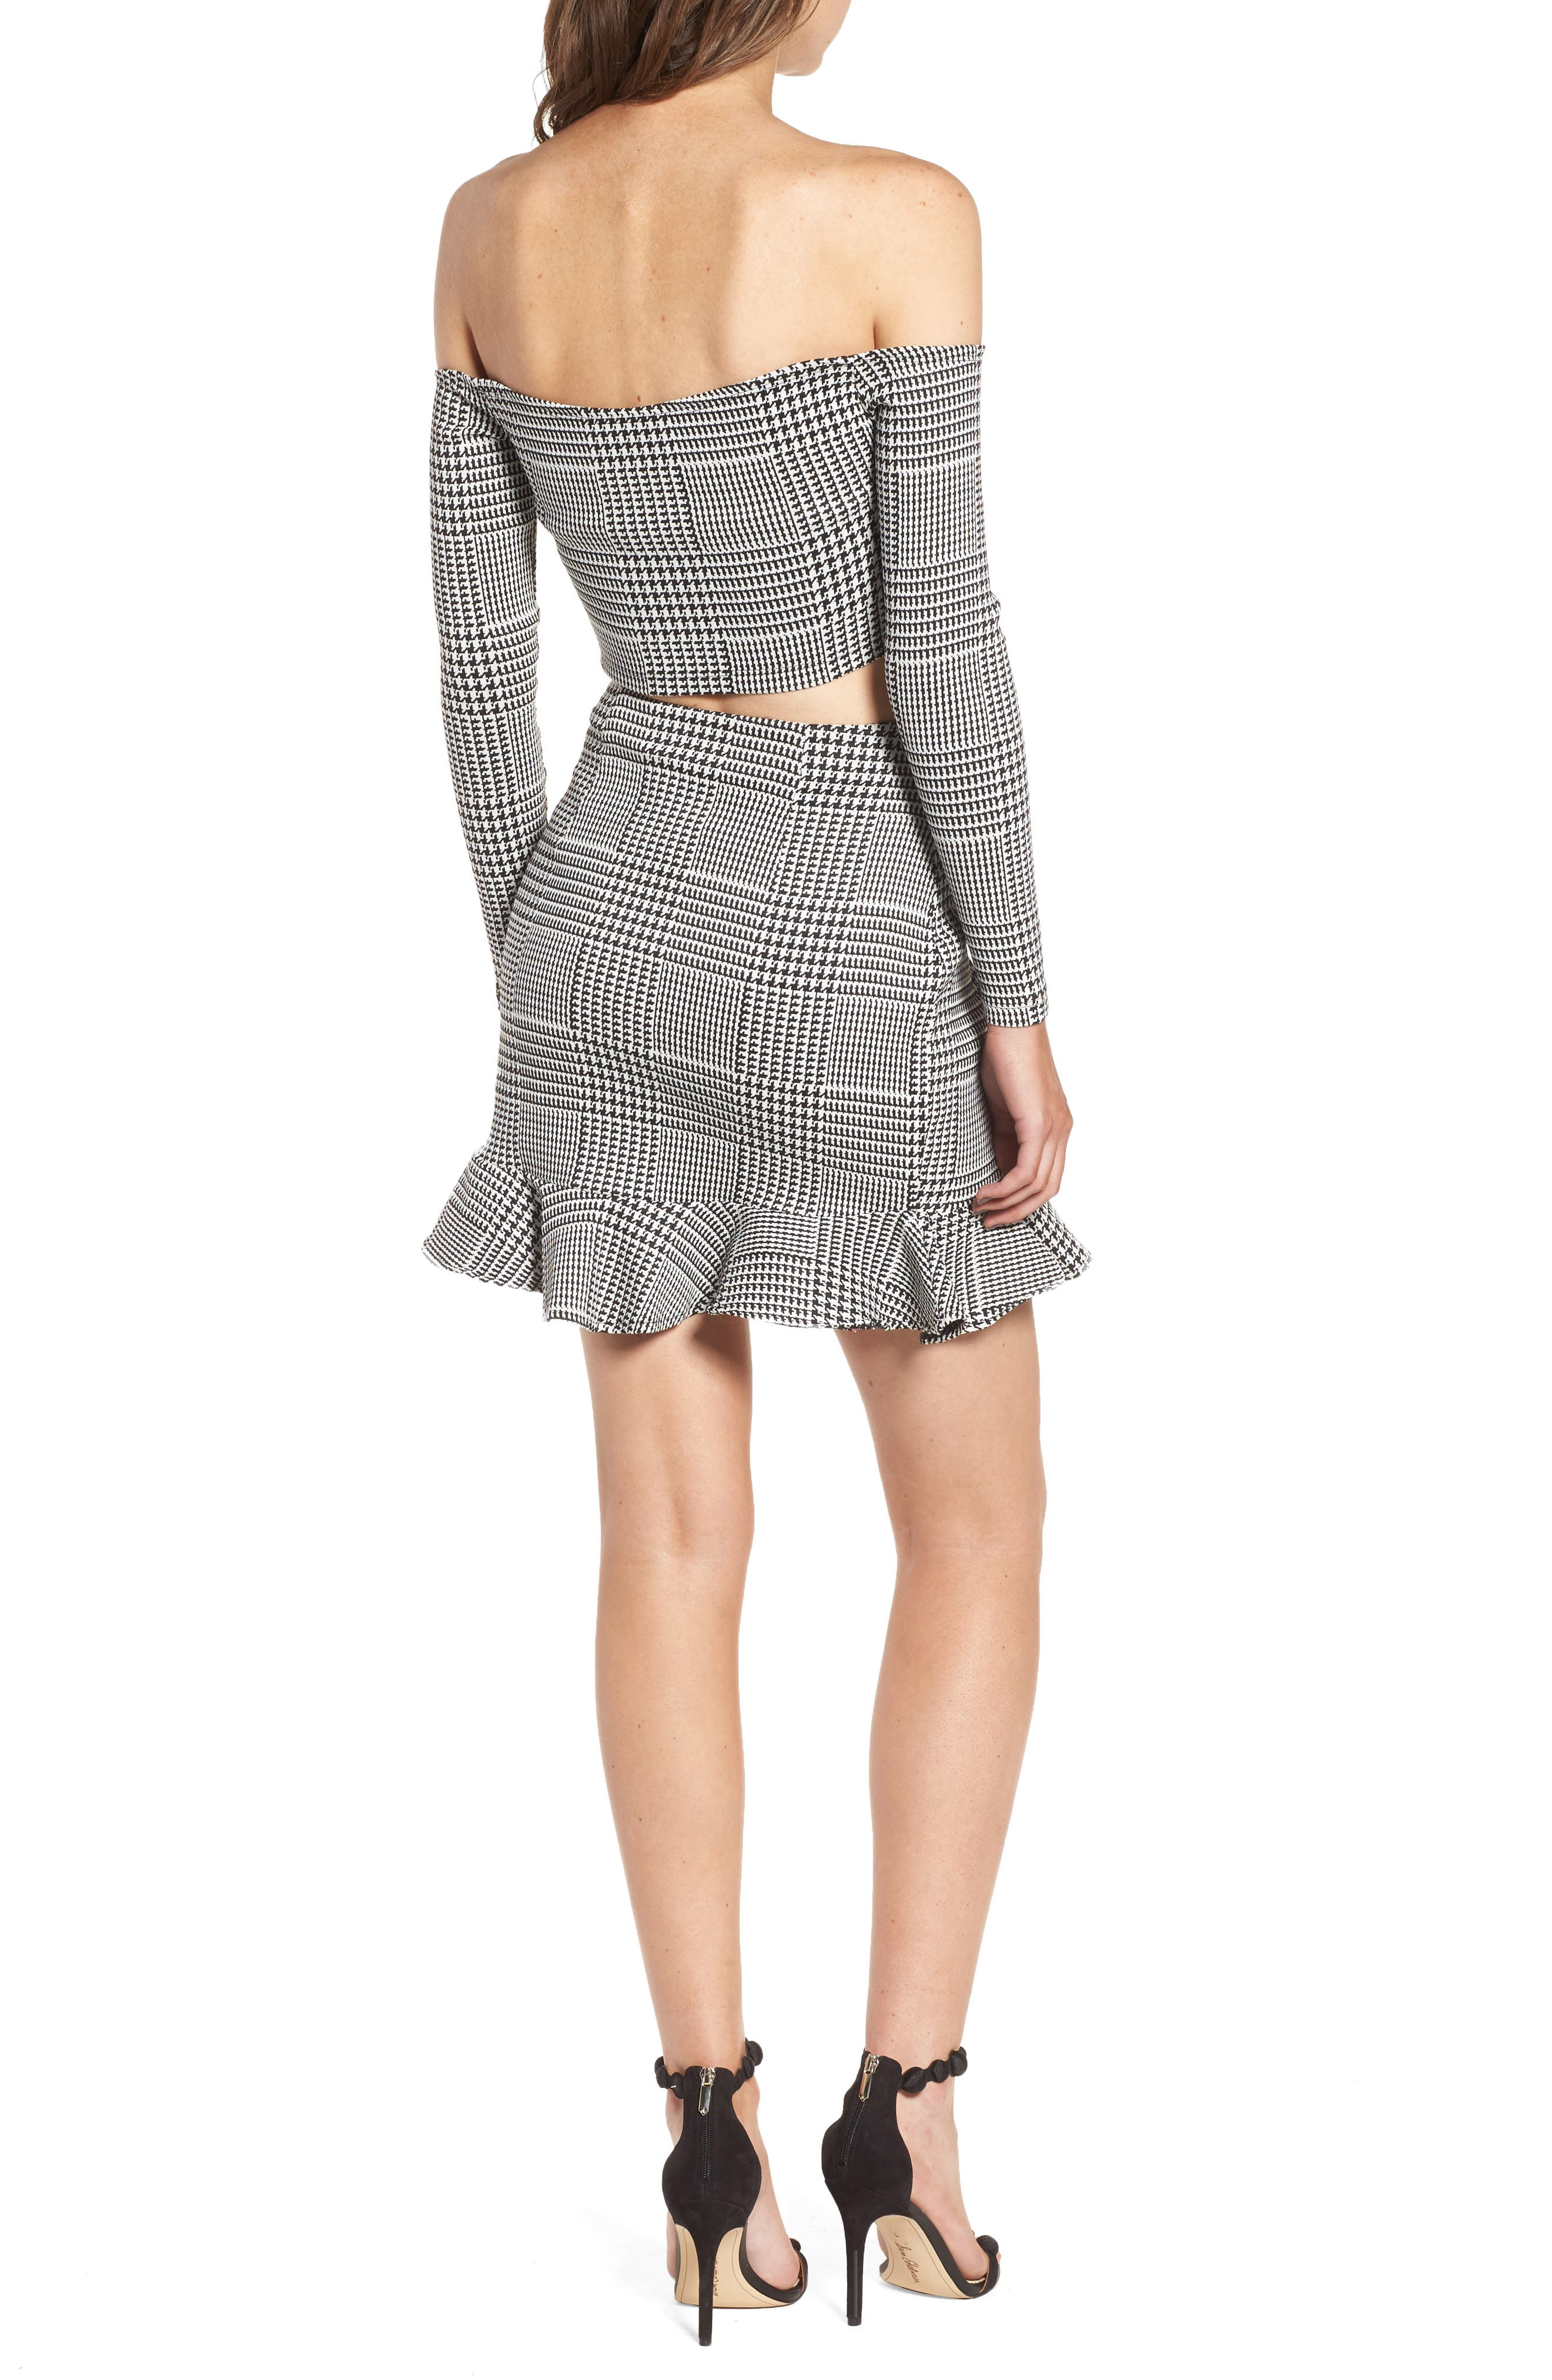 Affection Ruffle Houndstooth Skirt,                             Alternate thumbnail 8, color,                             020